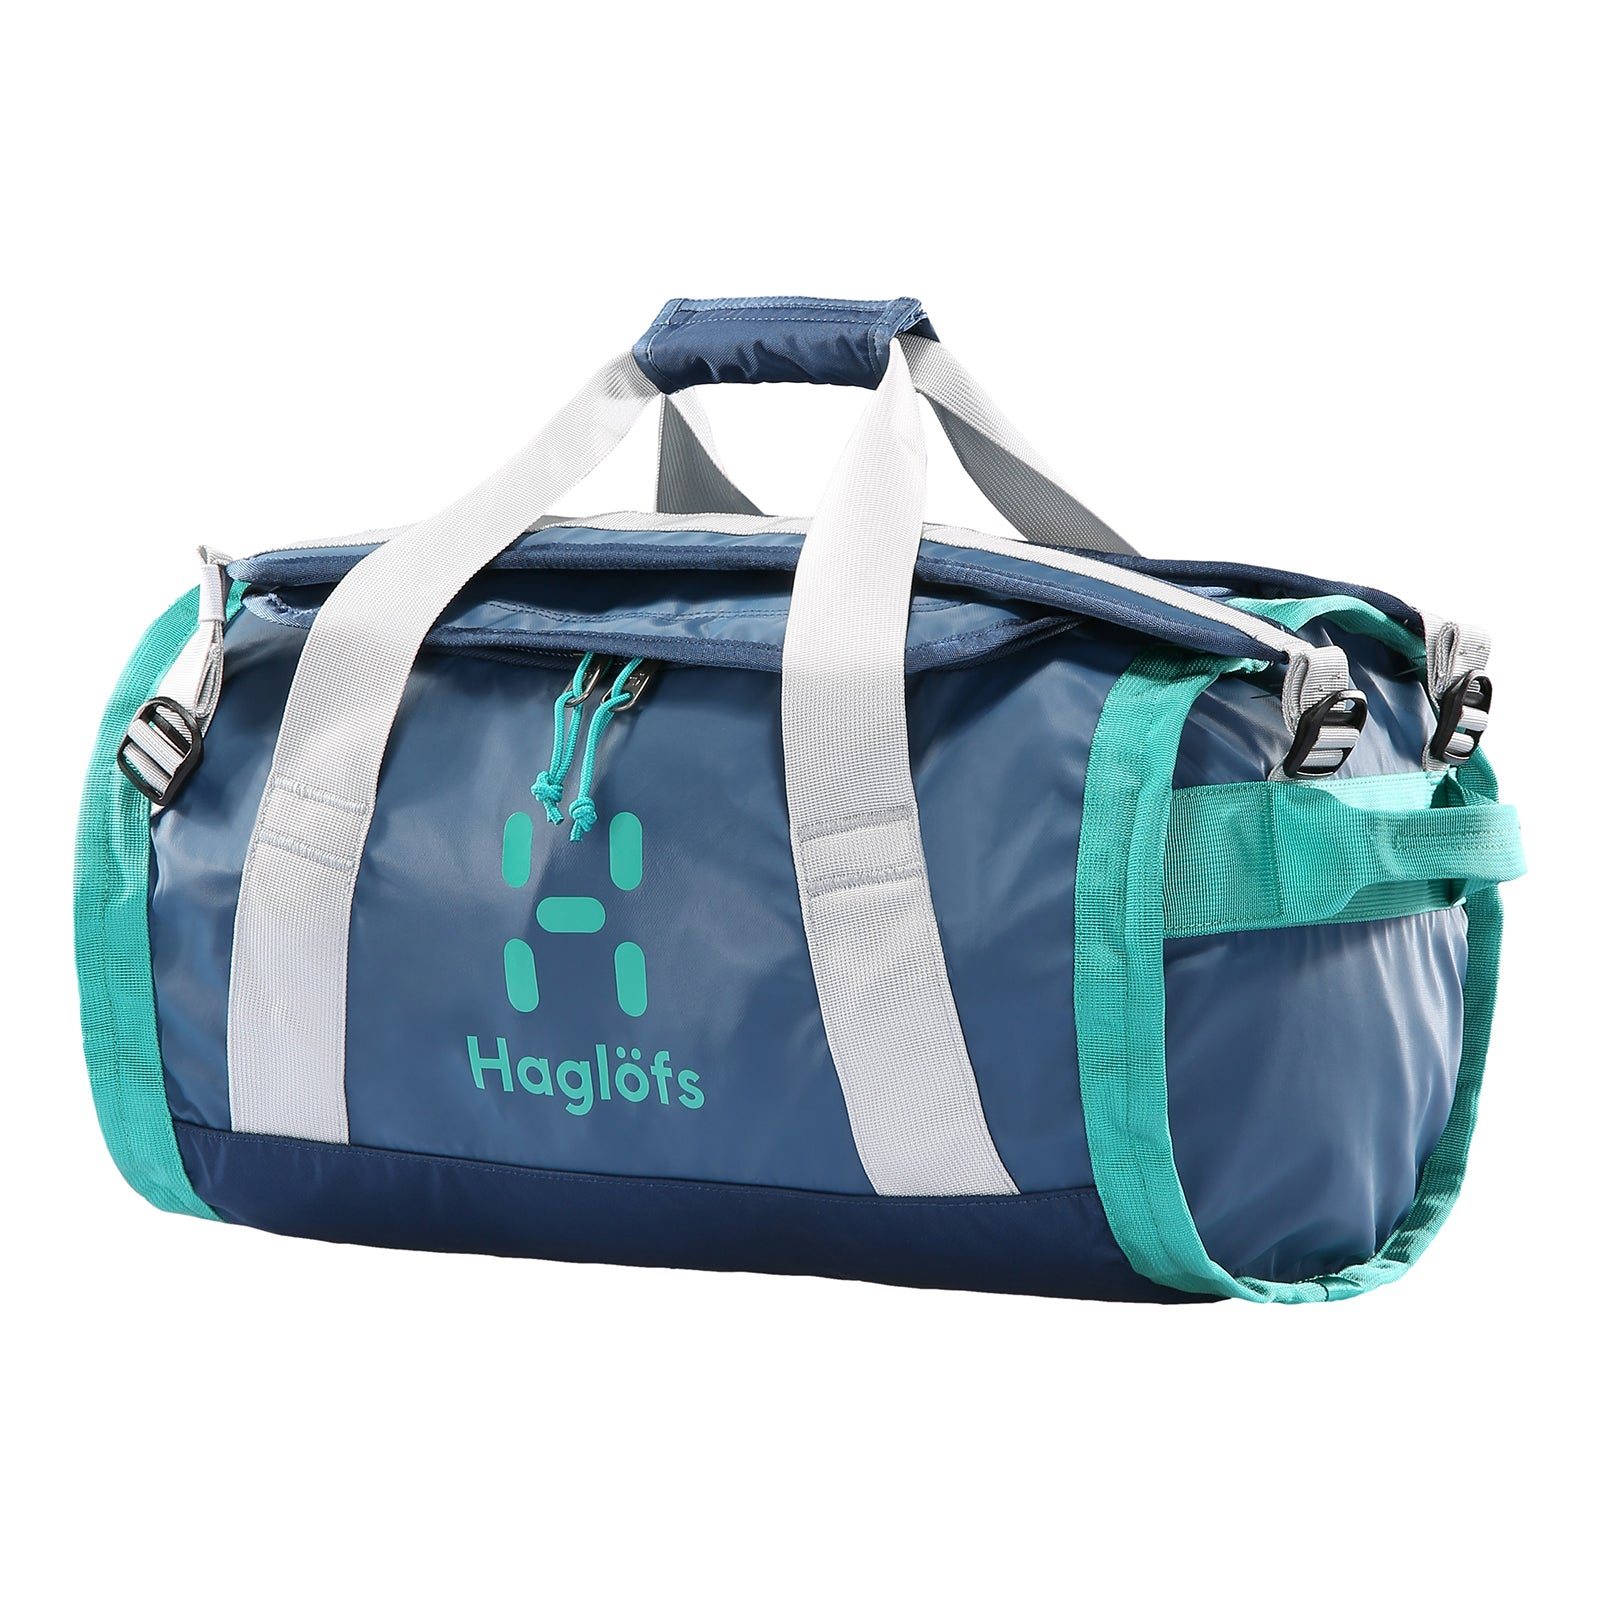 Haglofs Lava 30 Duffle Bag - Blue Ink/crystal Lak